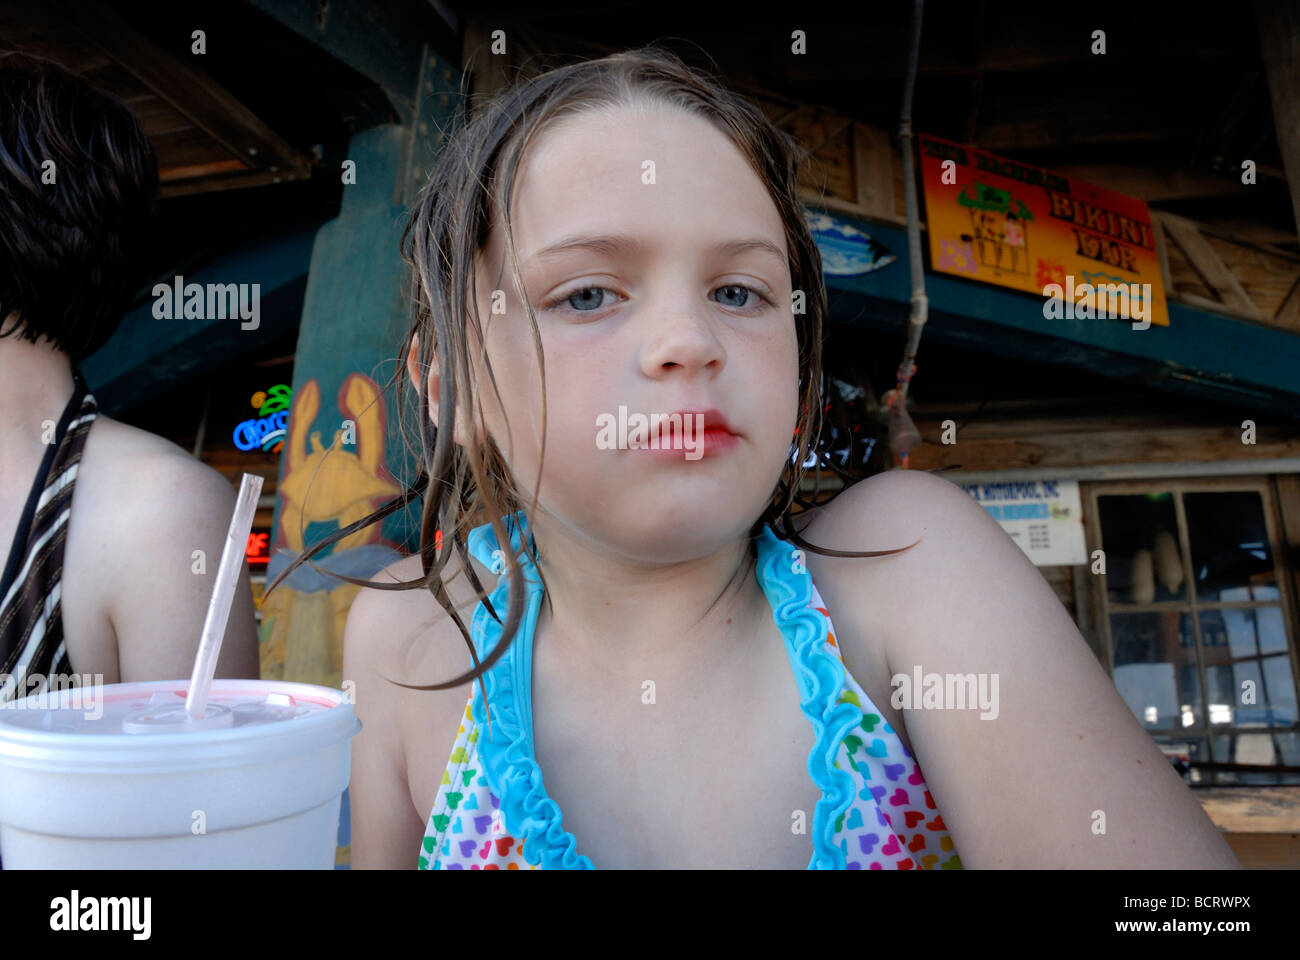 Young girl with skeptical look - Stock Image